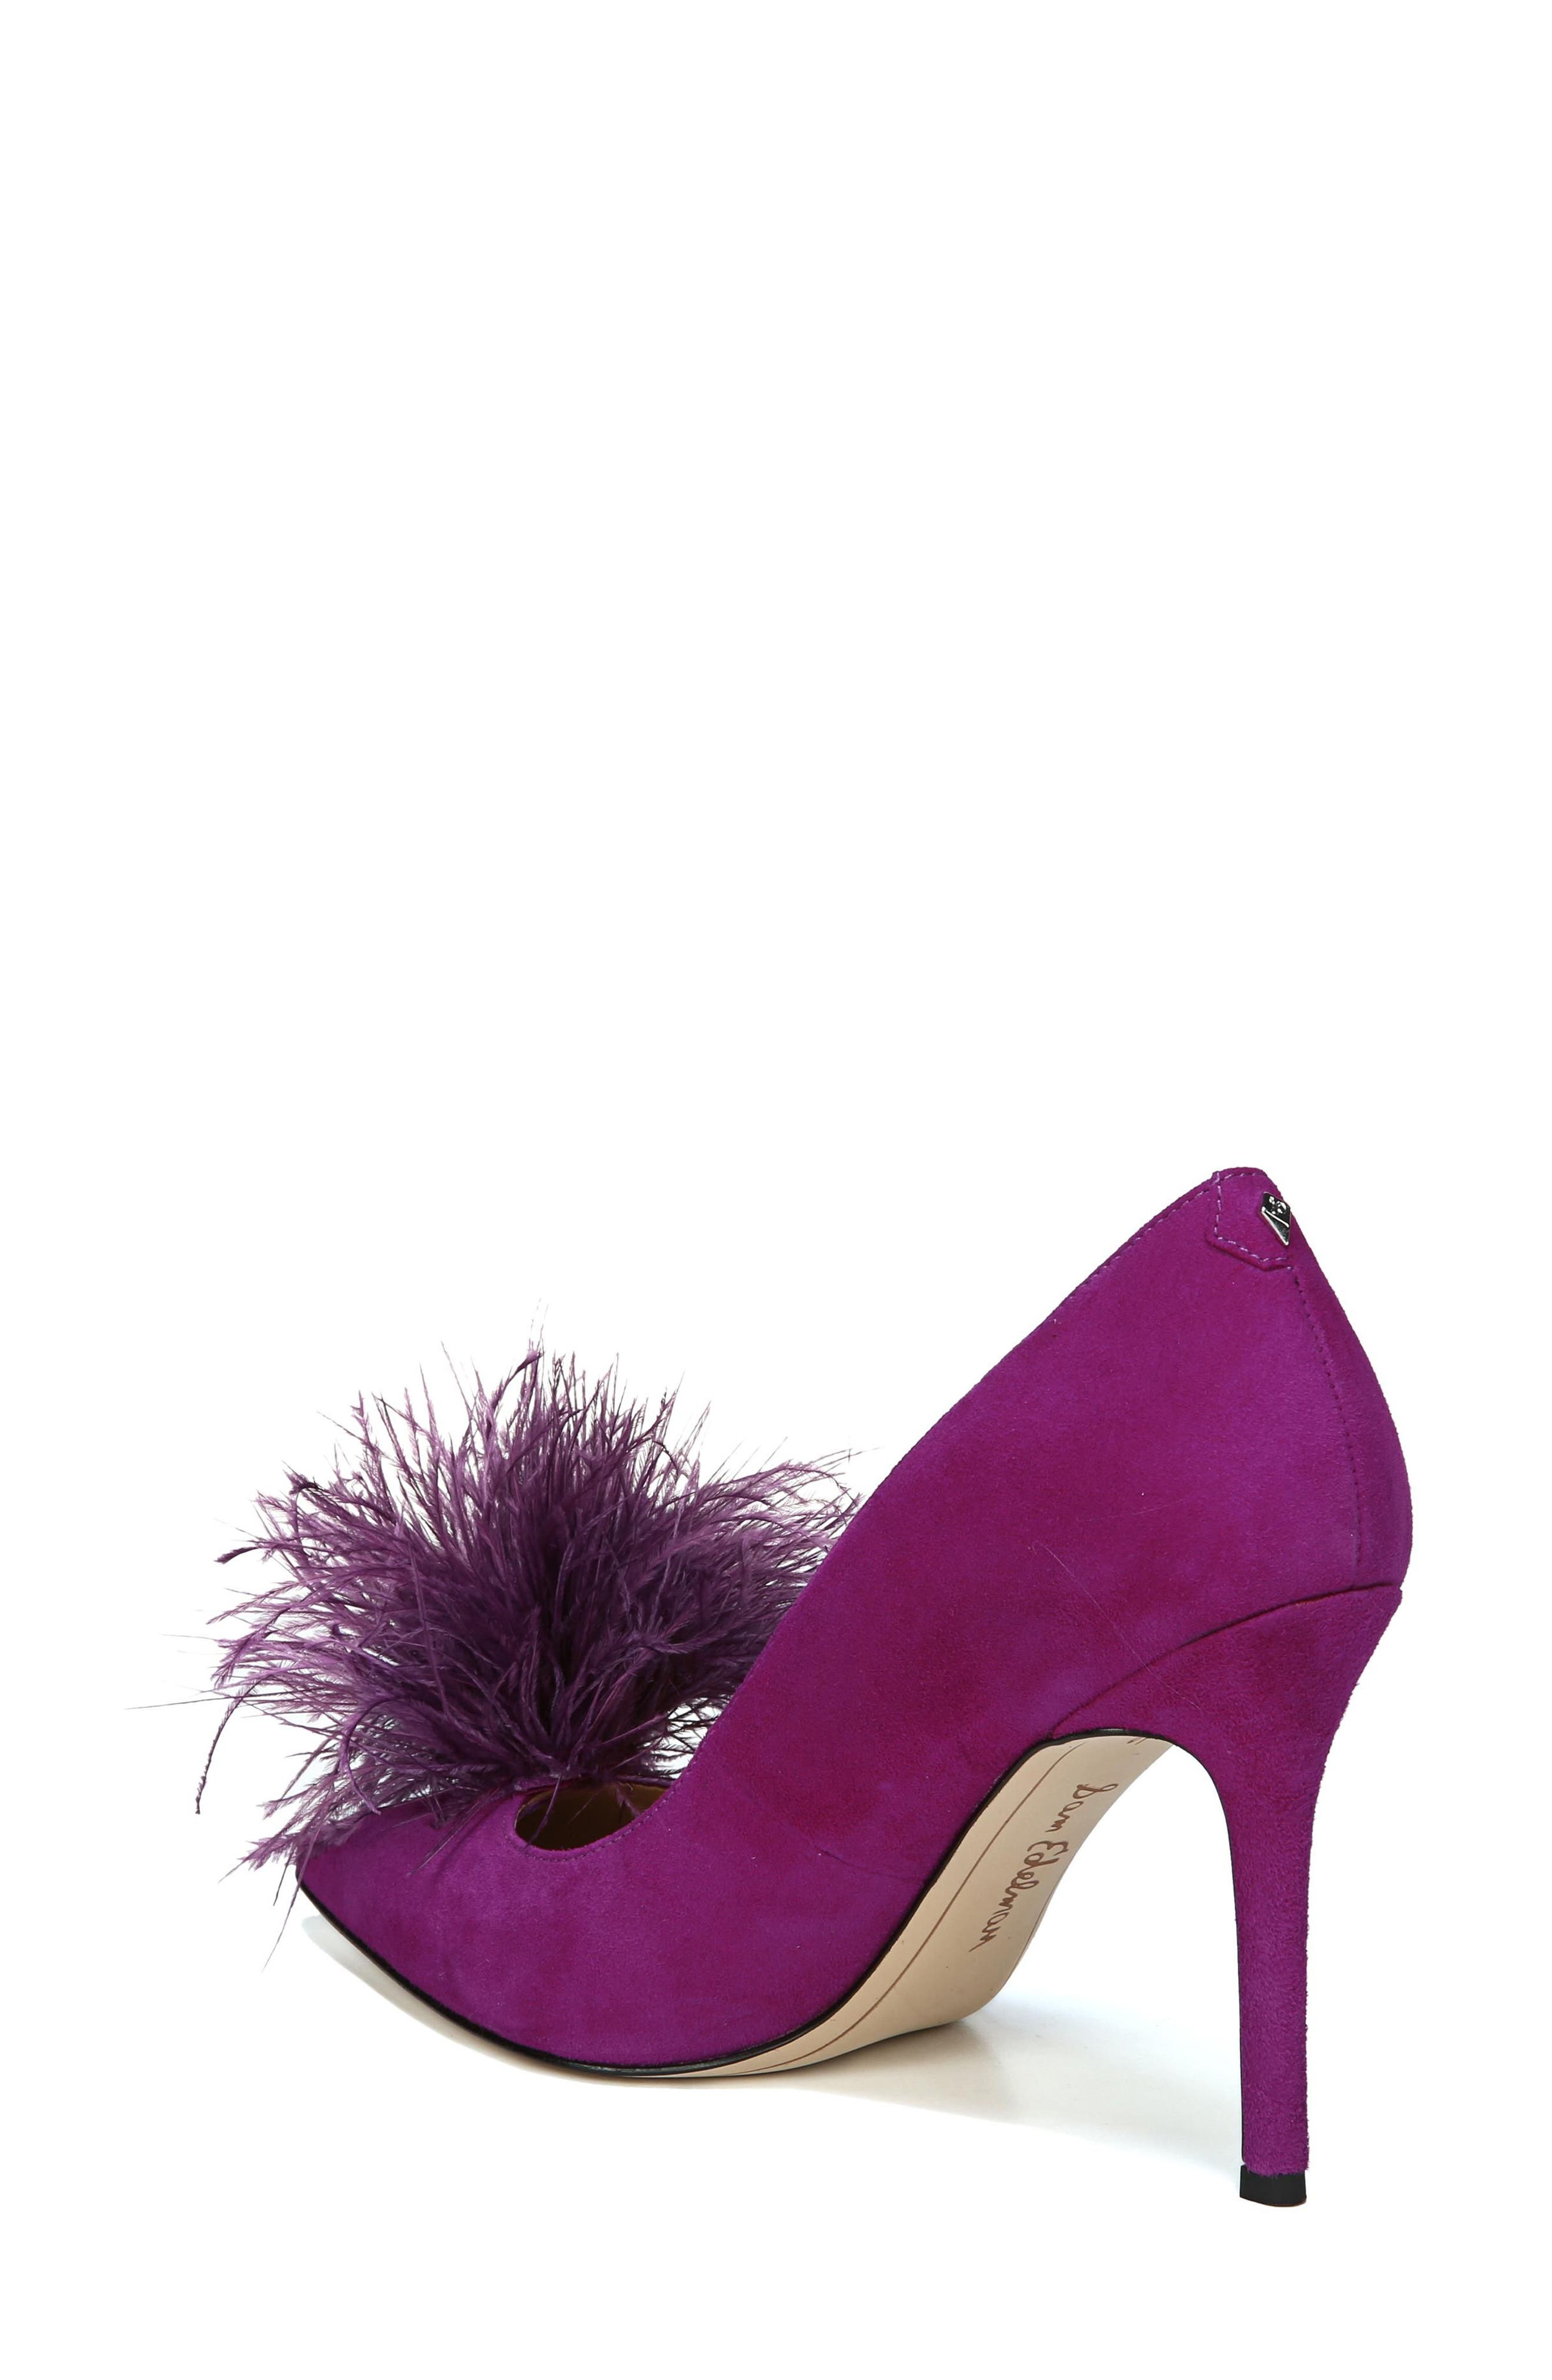 Haide Feather Pompom Pump,                             Alternate thumbnail 2, color,                             Laser Purple Leather